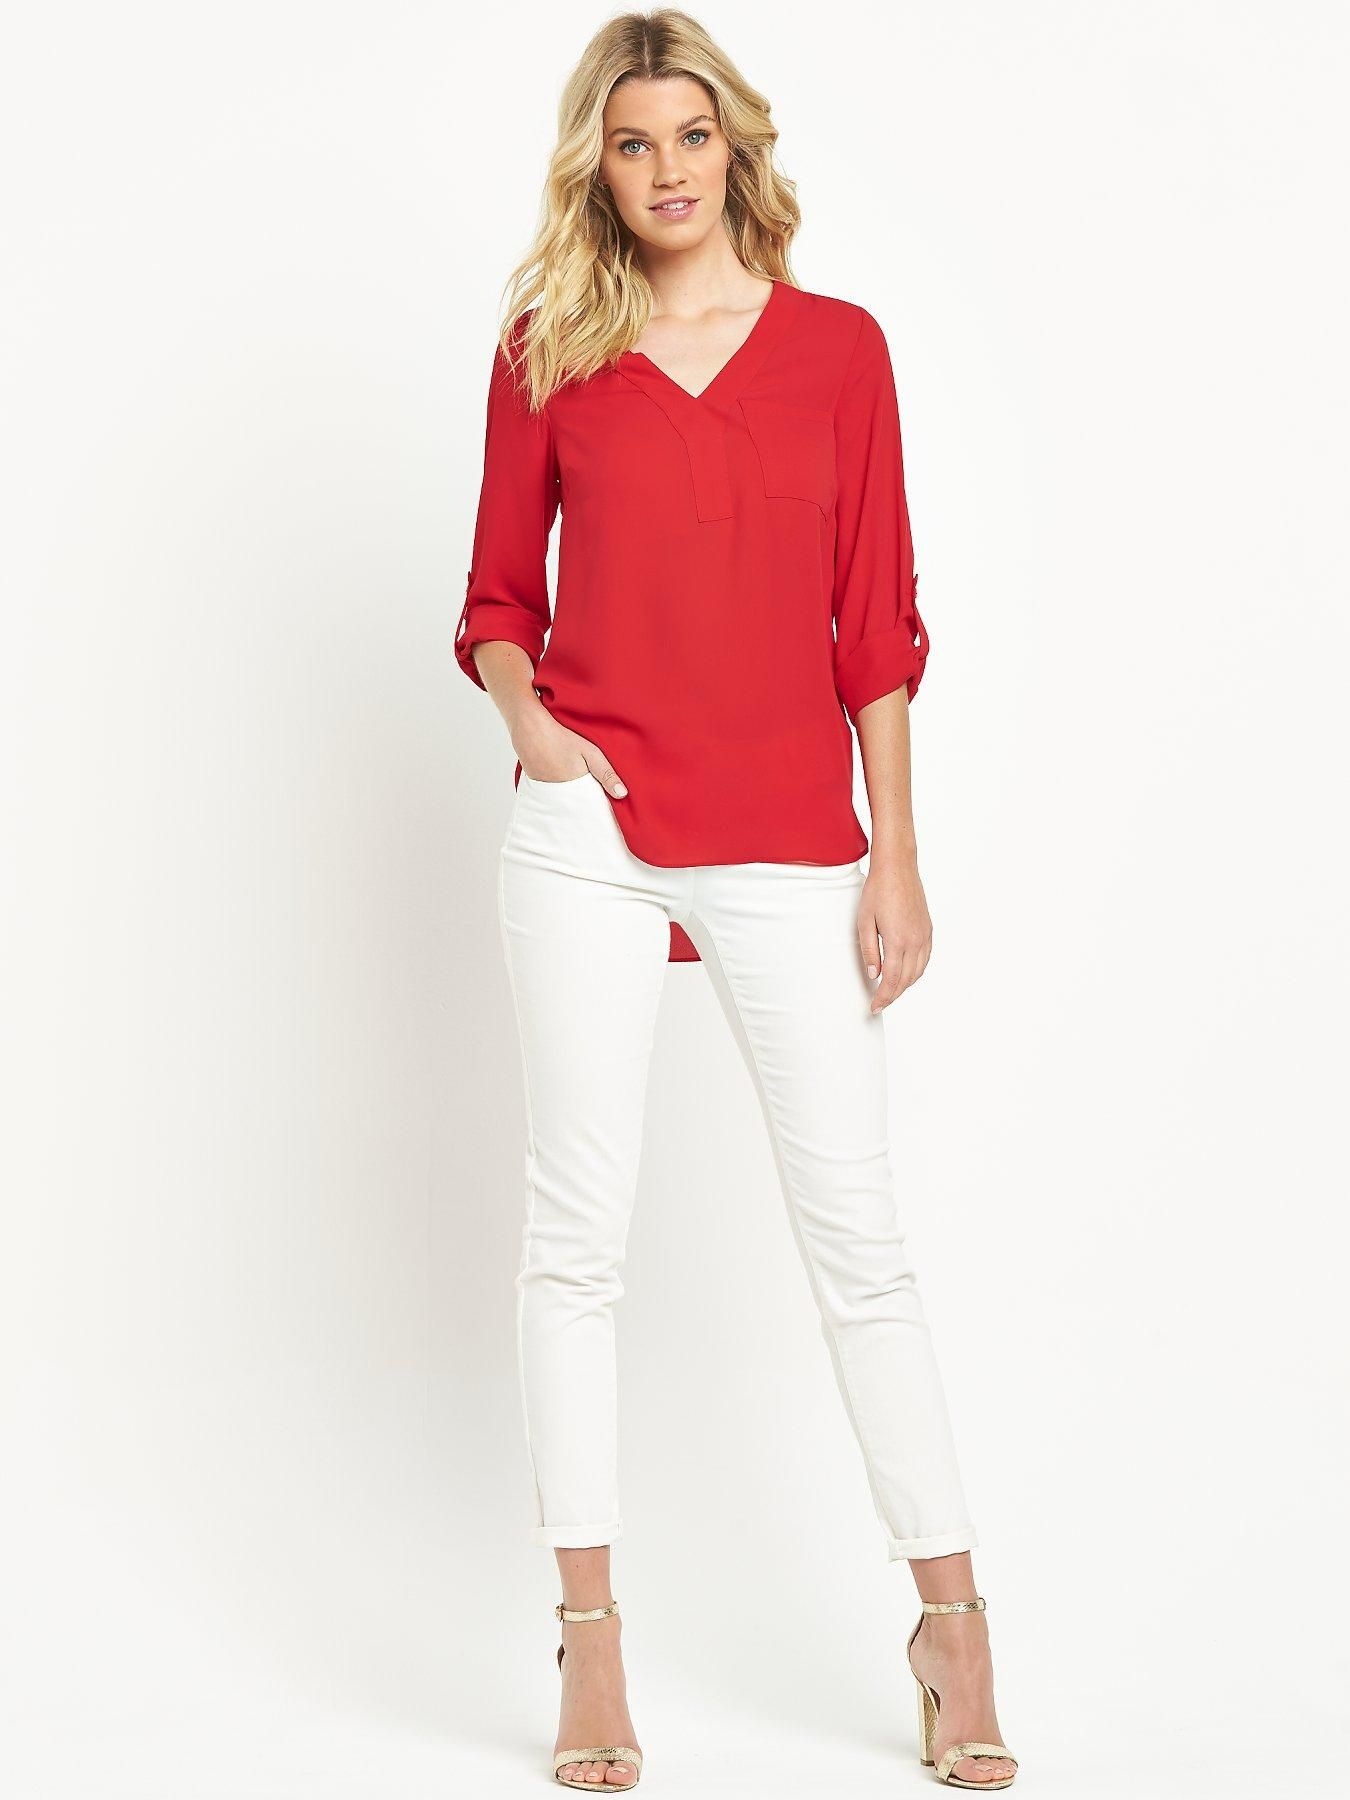 Top ideas for red pants - Red Top White Pants Silver Heels Shoes